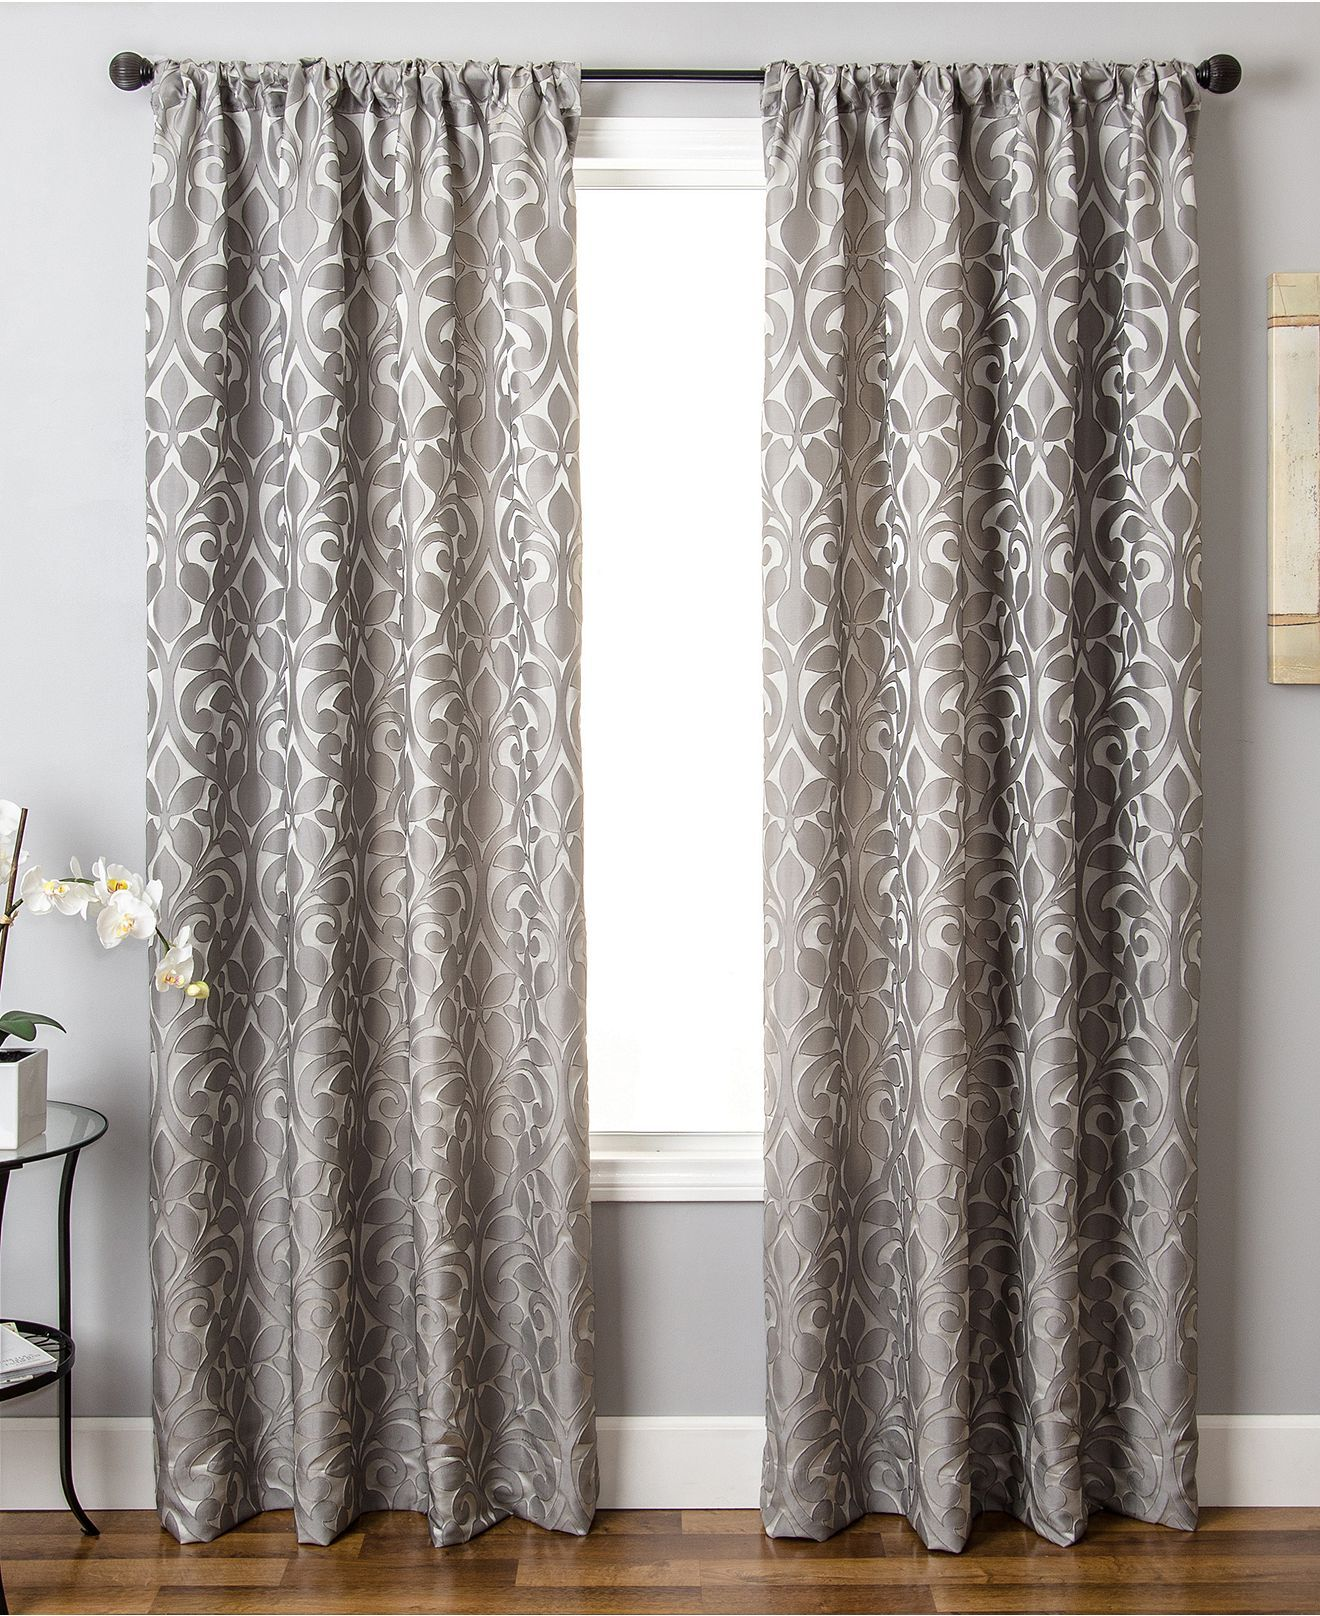 Softline Lillian 50 X 84 Panel Curtains Drapes For The